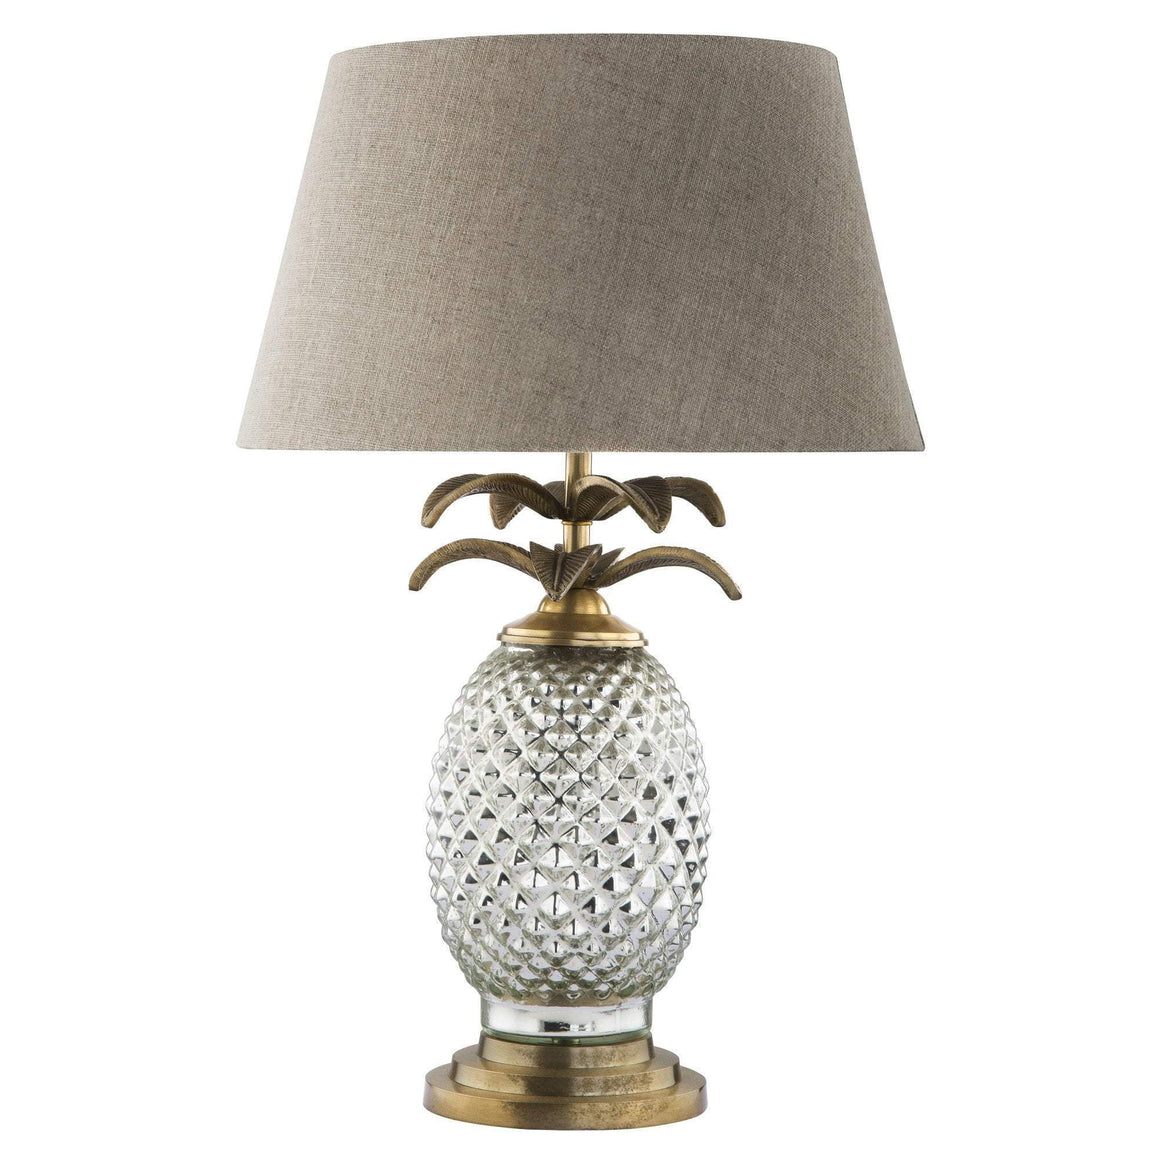 ANT GOLD GLASS PINE LAMP W/ NAT LINEN S